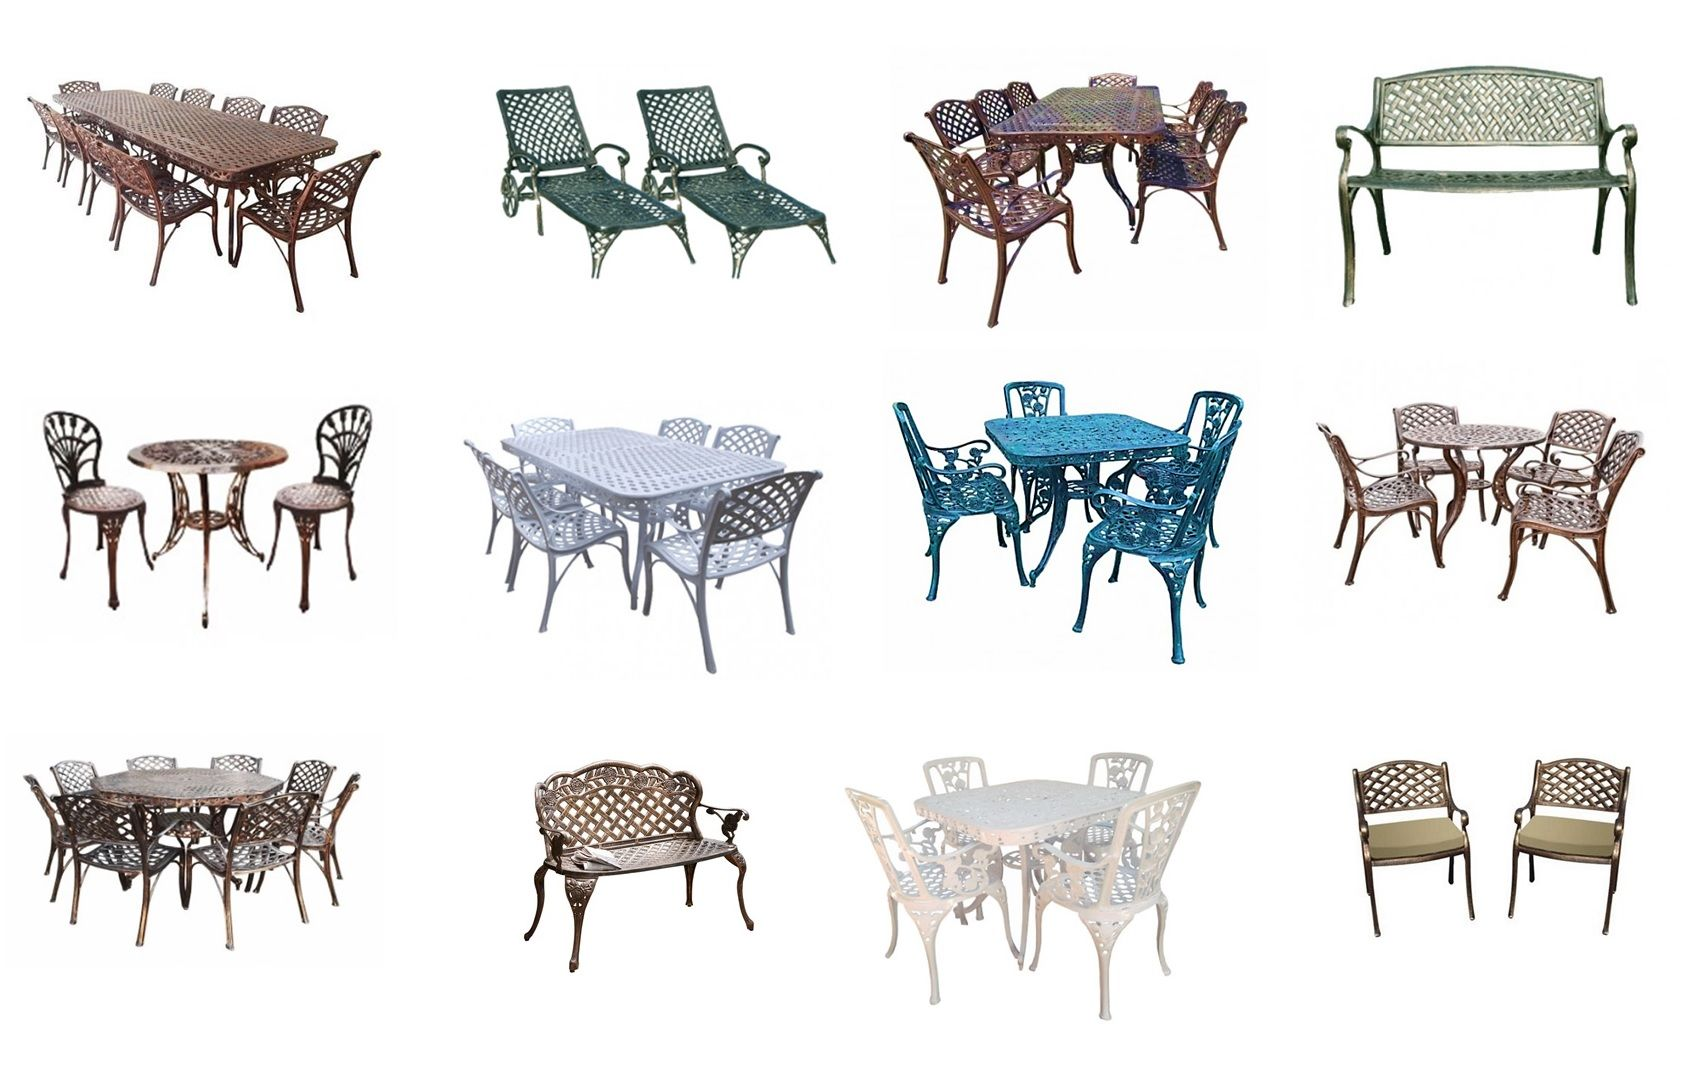 Affordable Patio Furniture Cape Town  Garden chairs, Cast